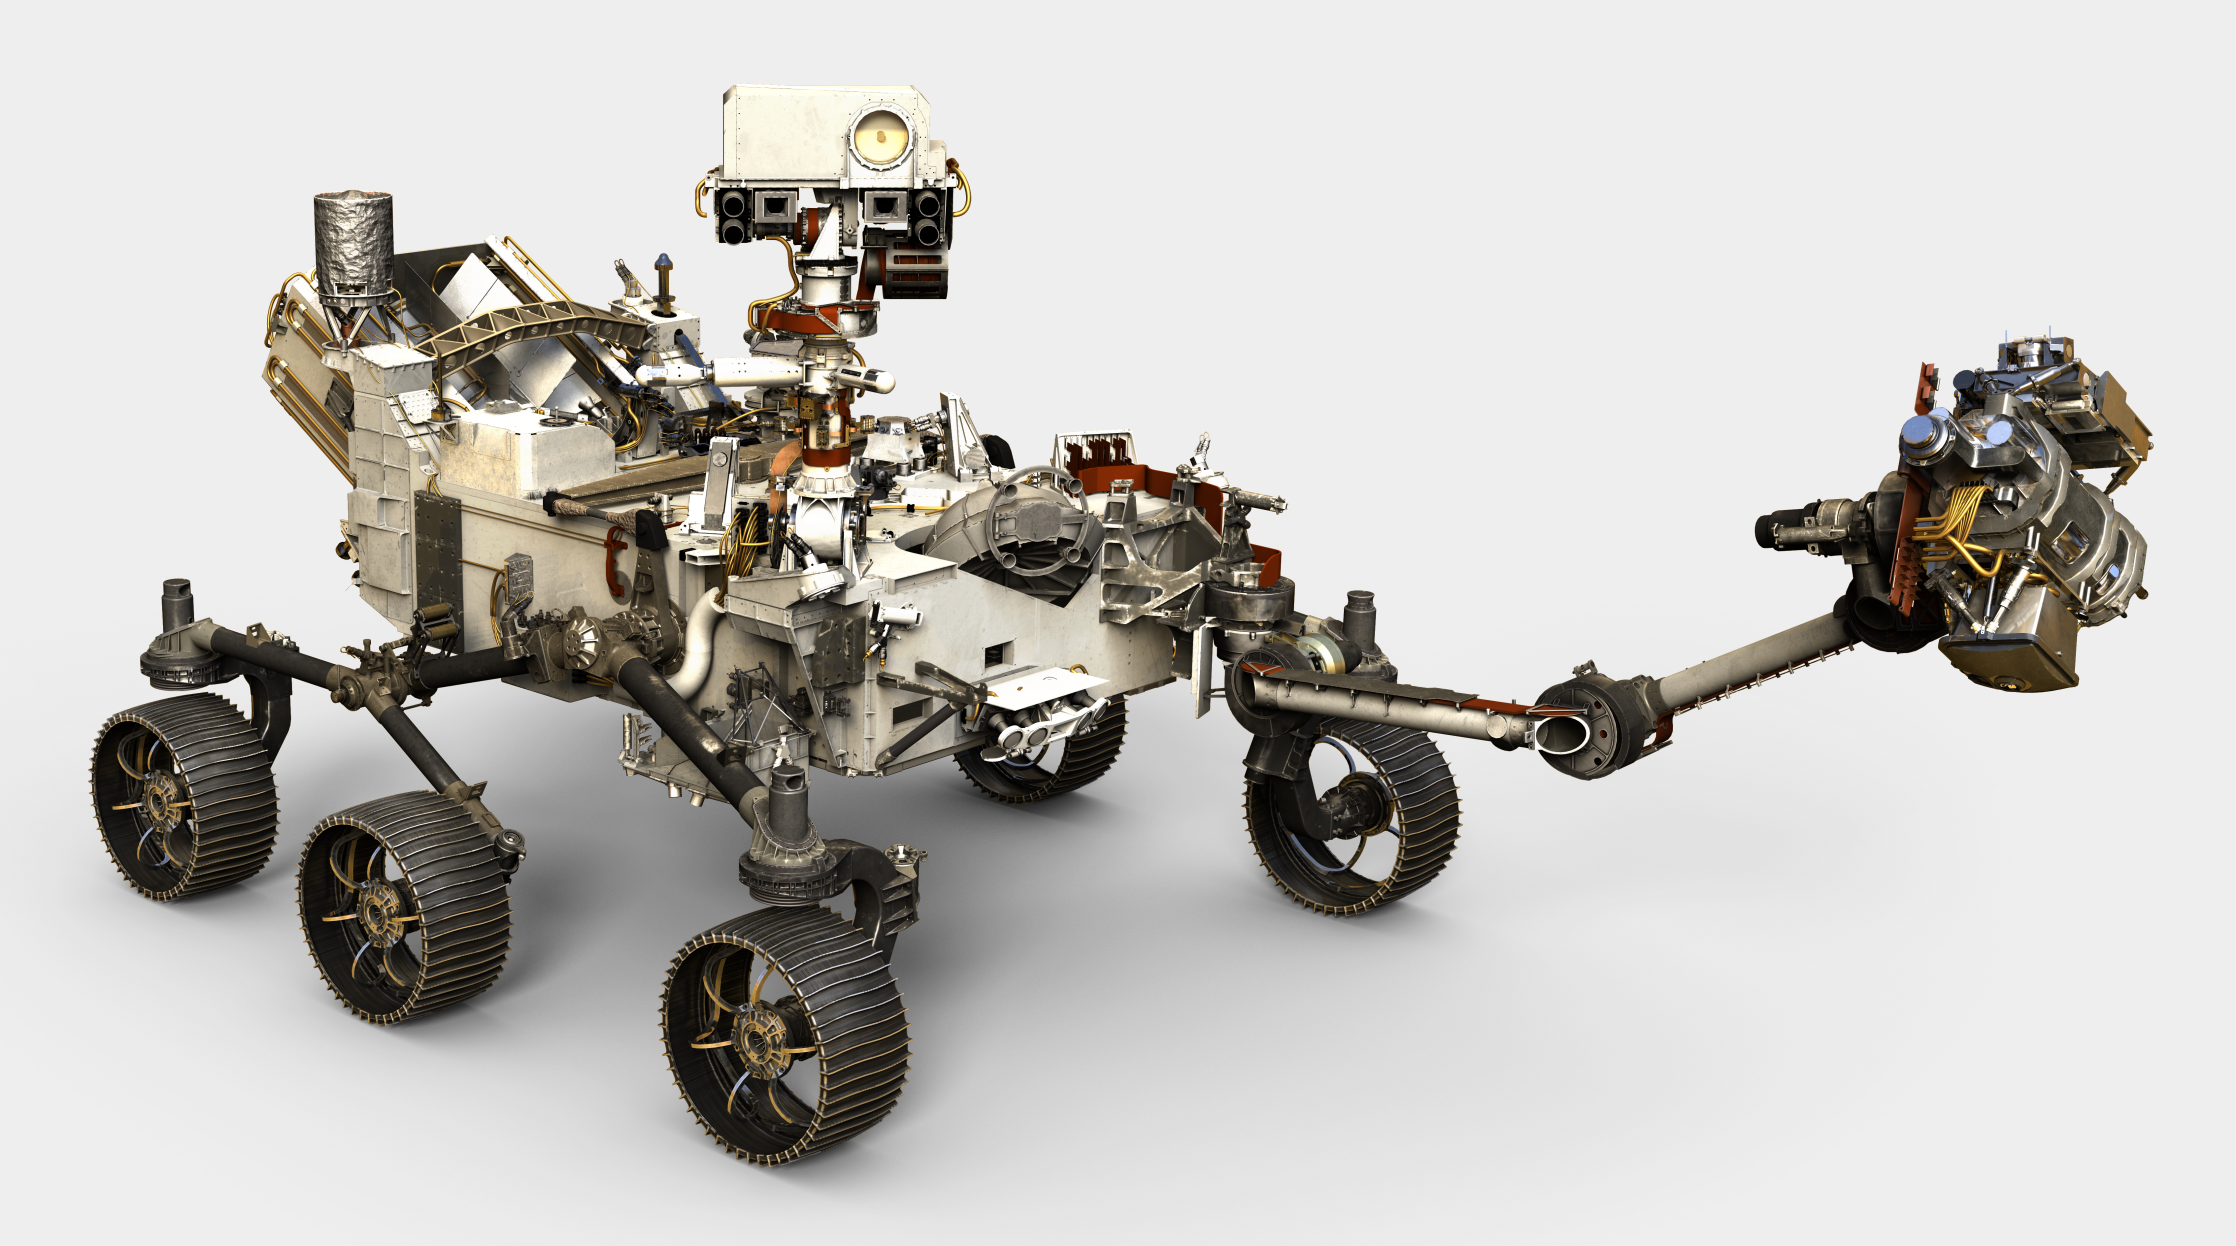 bpc_mars2020-rover-arm-extended.png